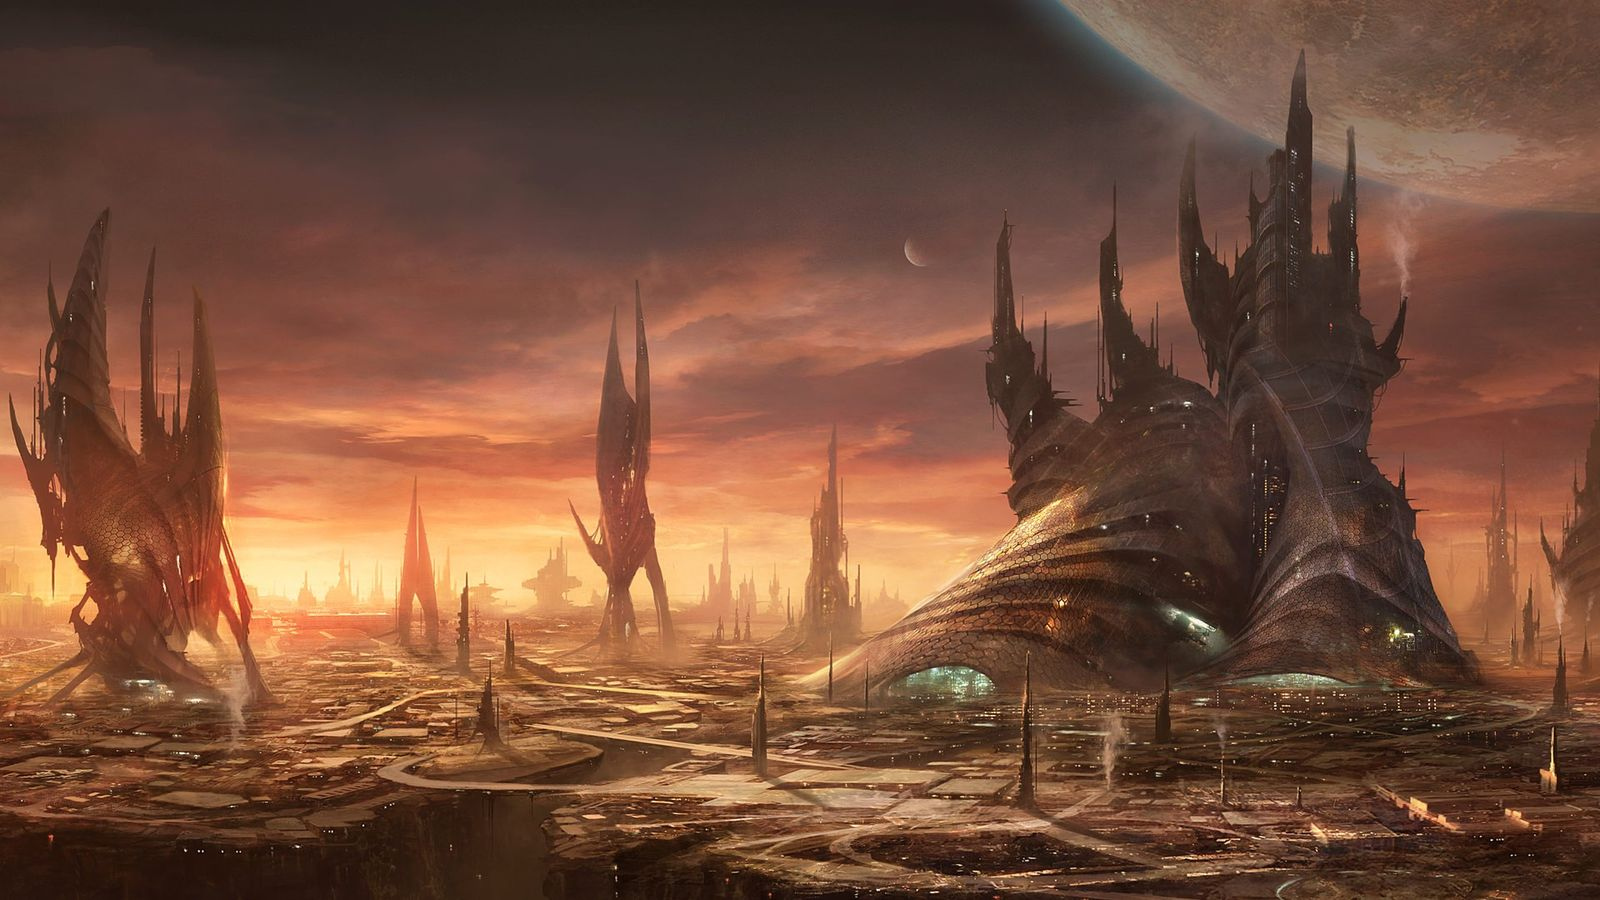 Stellaris Mod That Made All Humans White Removed By Paradox Interactive